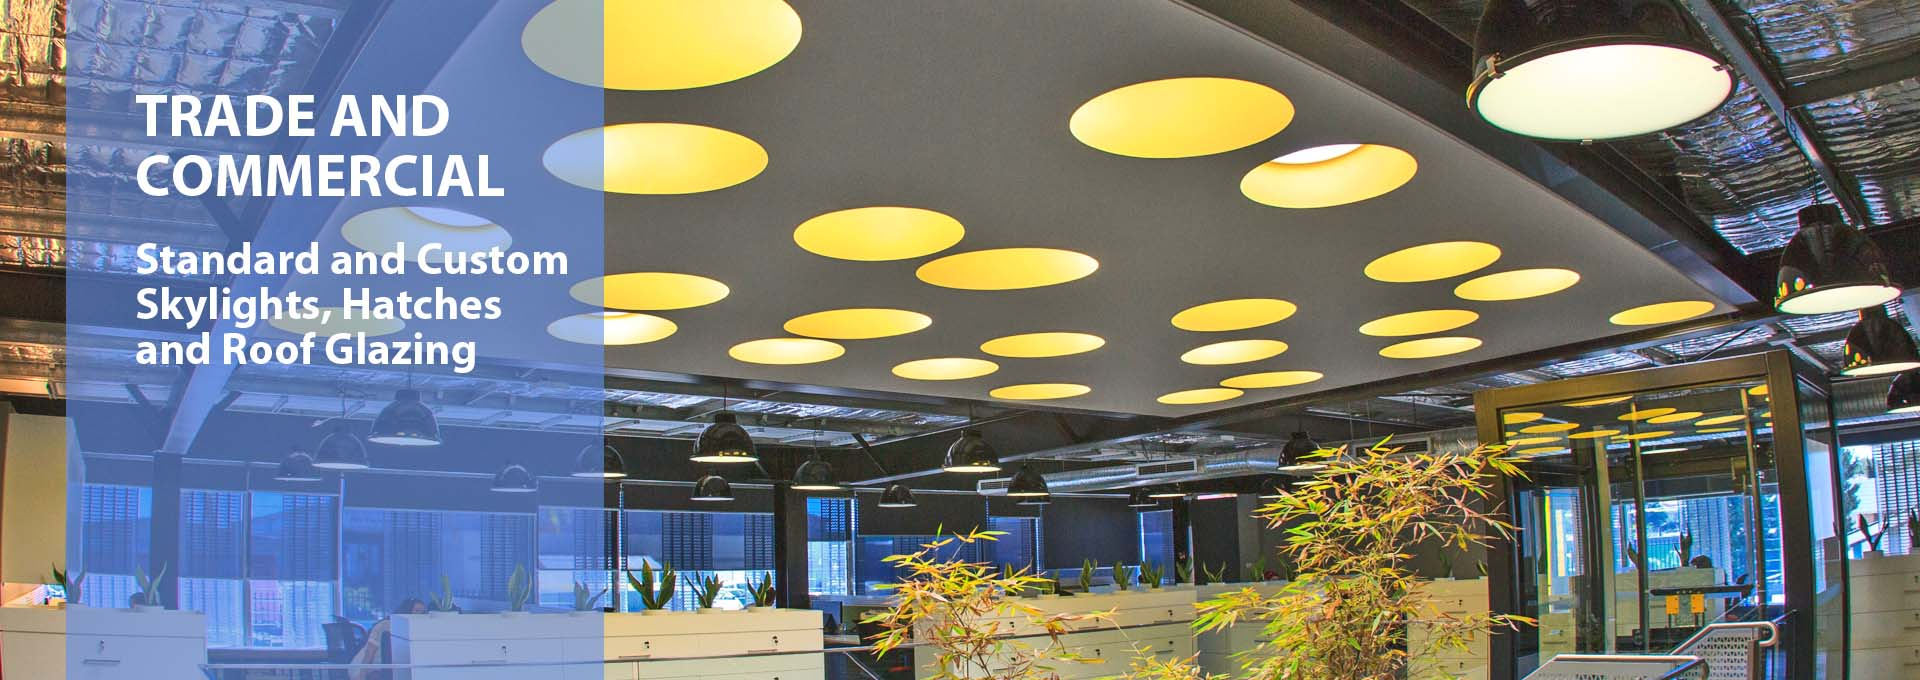 Home natural lighting products skylights sydney skylights home natural lighting products skylights sydney skylights brisbane mozeypictures Choice Image